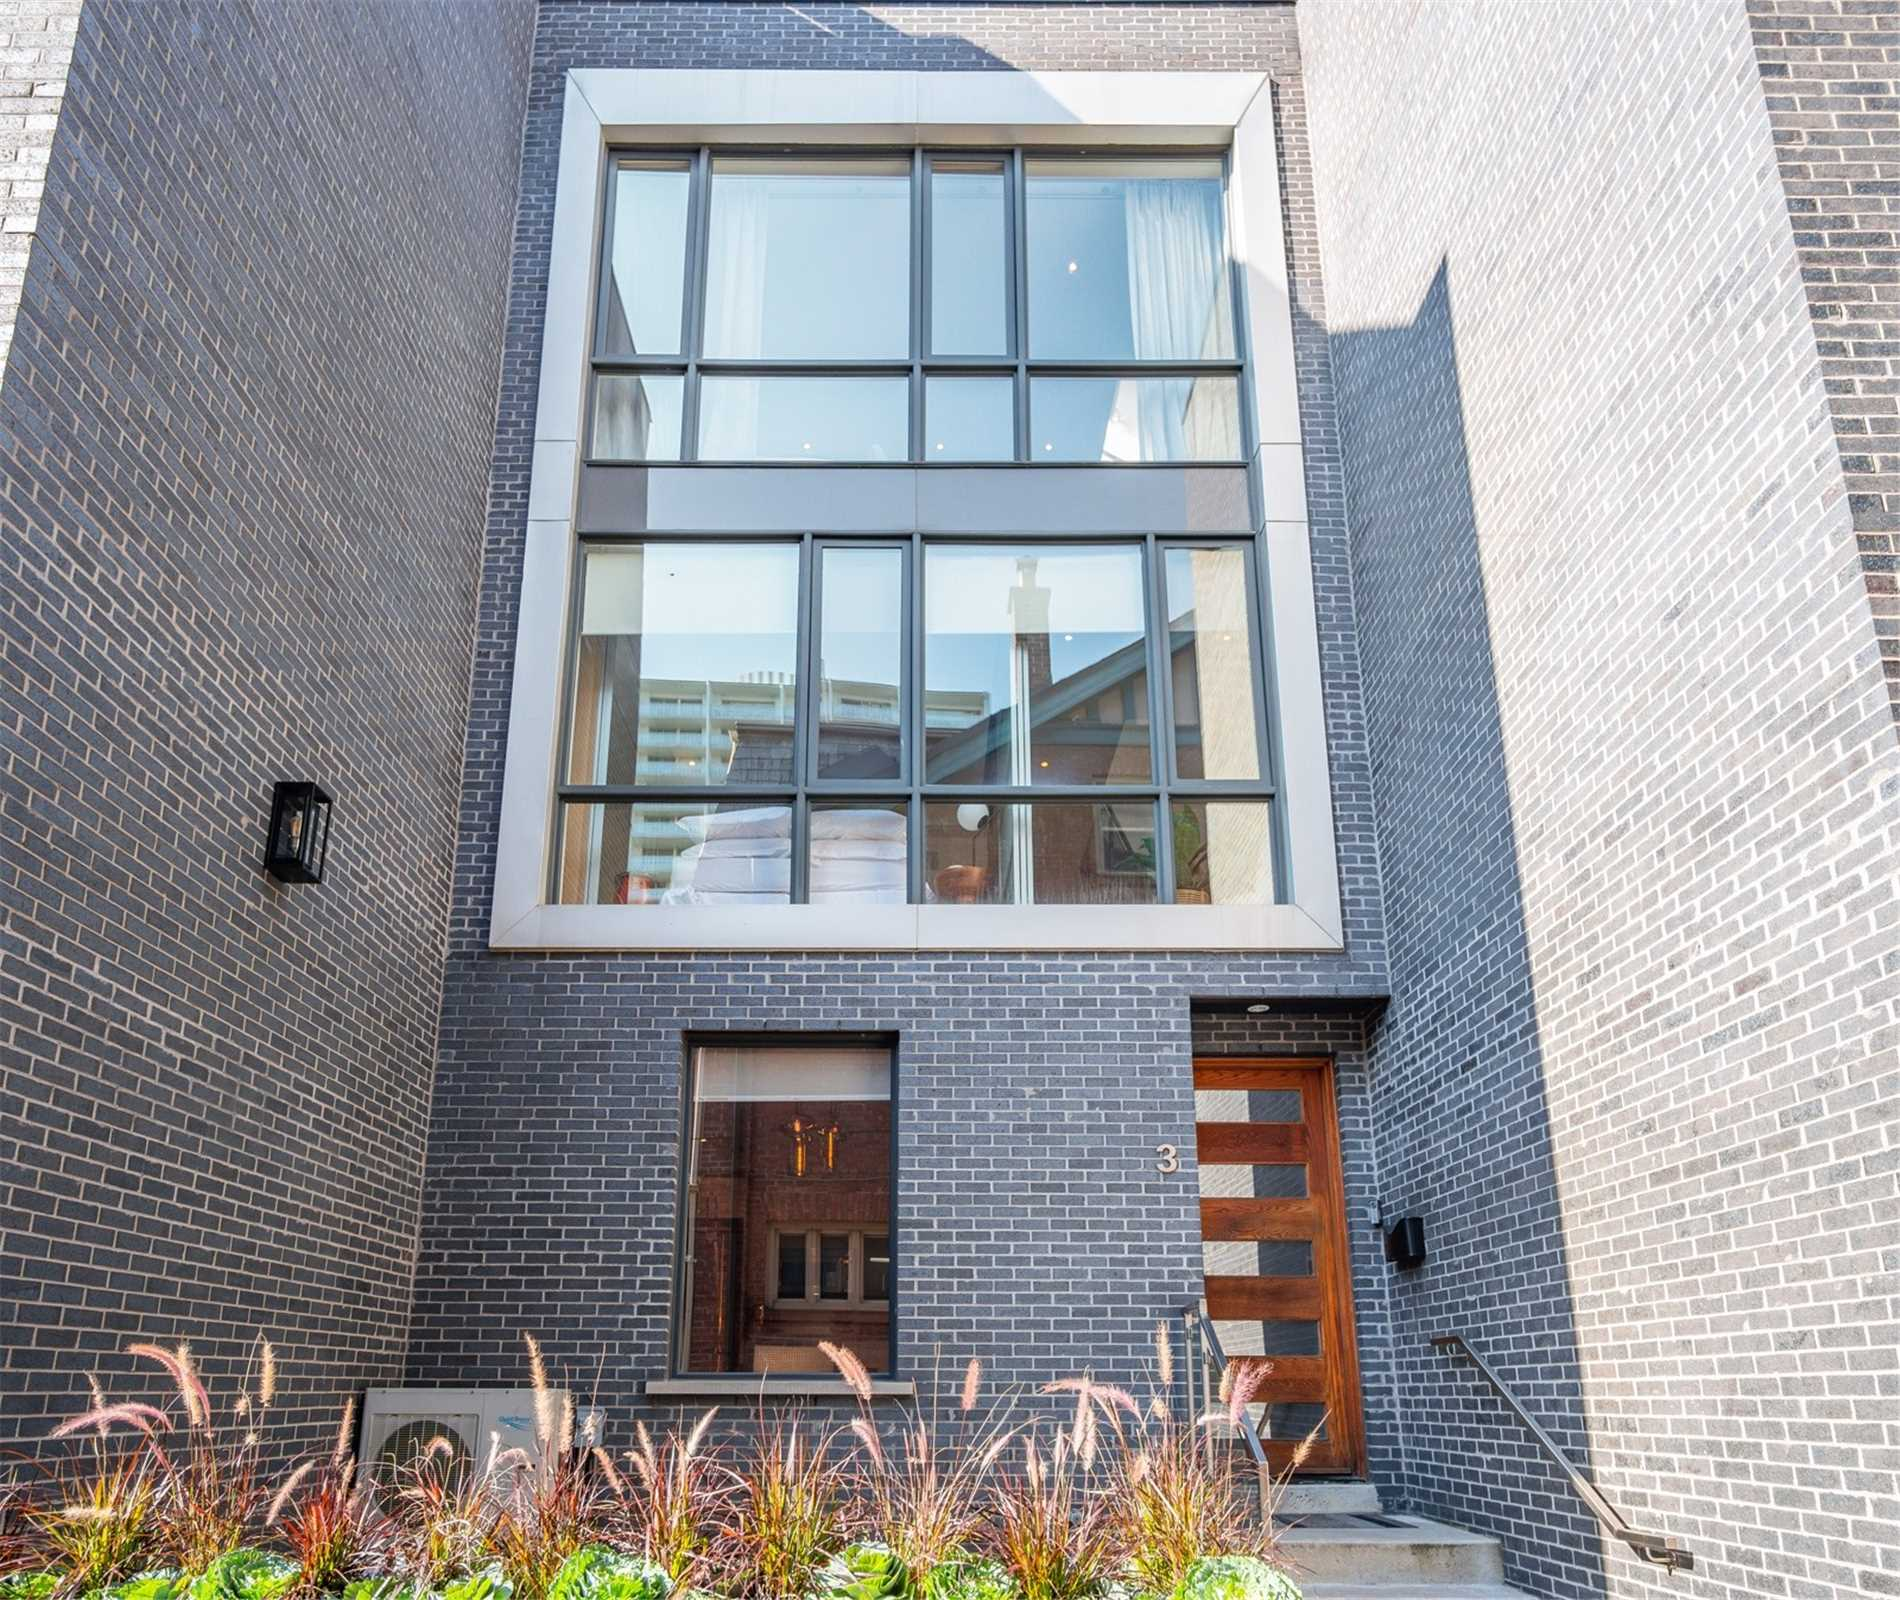 Condo Townhouse For Sale In Toronto , 2 Bedrooms Bedrooms, ,3 BathroomsBathrooms,Condo Townhouse,For Sale,3,Spadina